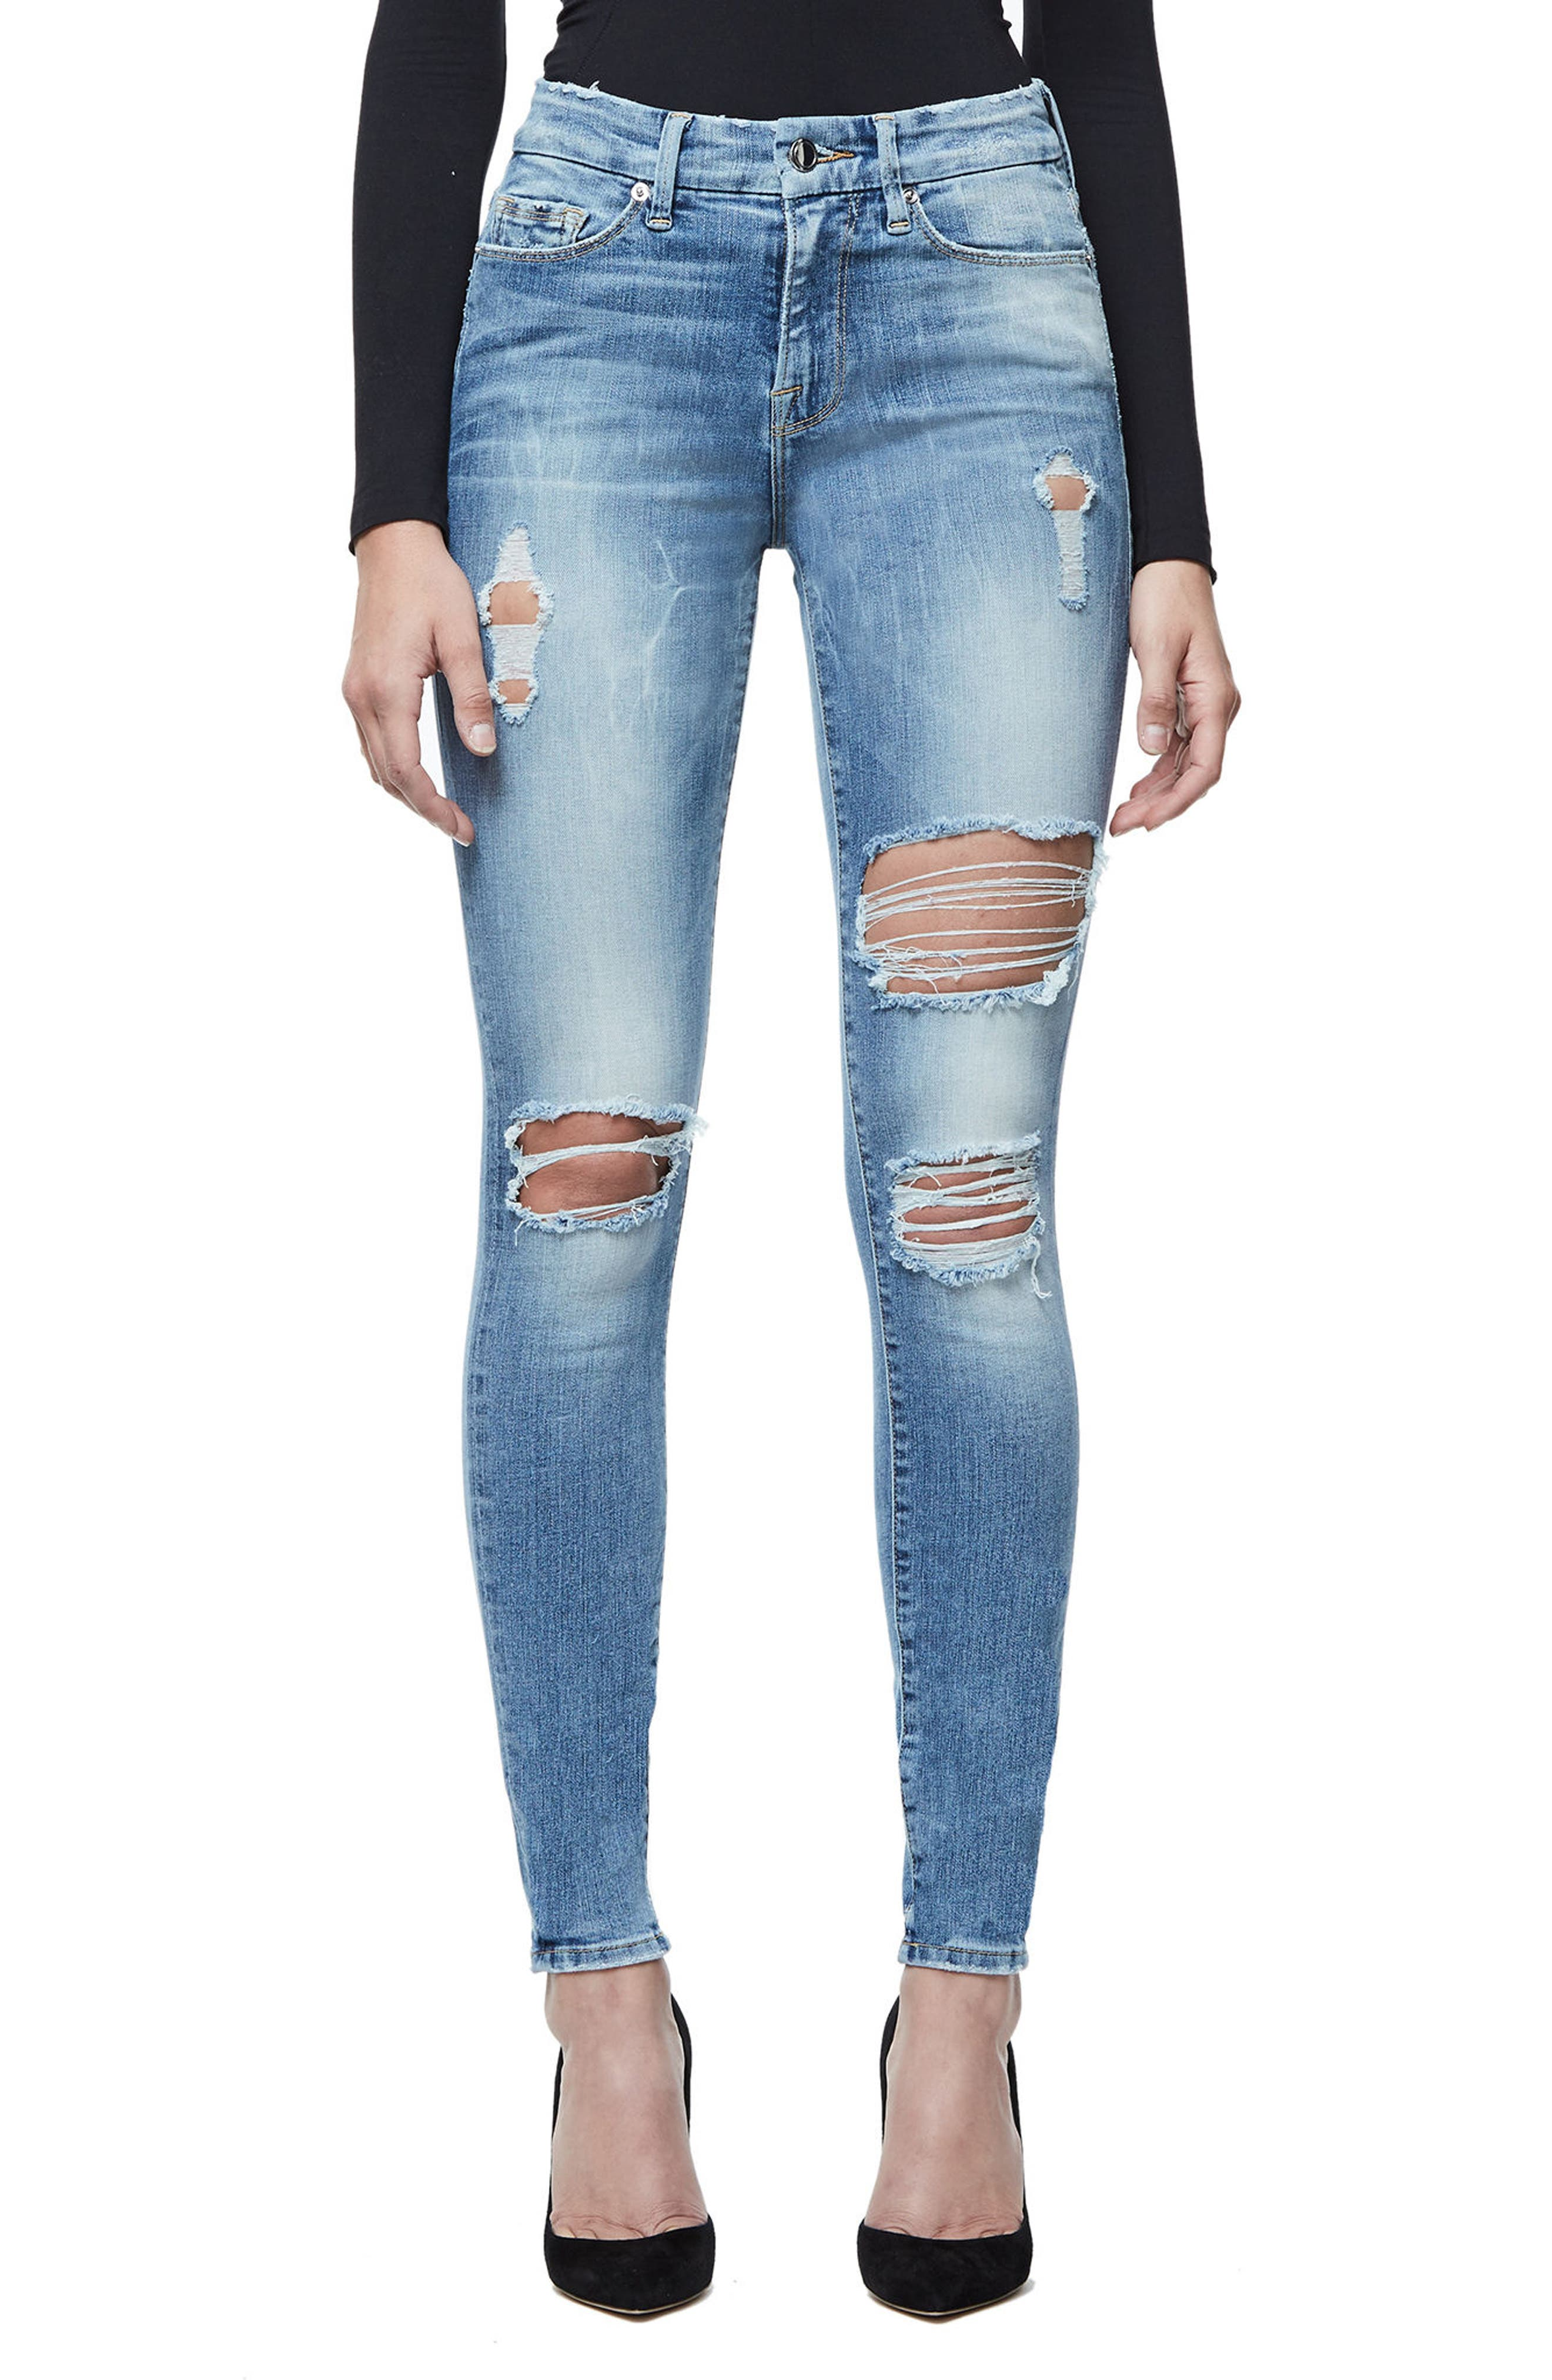 Good Legs Ripped Skinny Jeans,                             Main thumbnail 1, color,                             Blue068